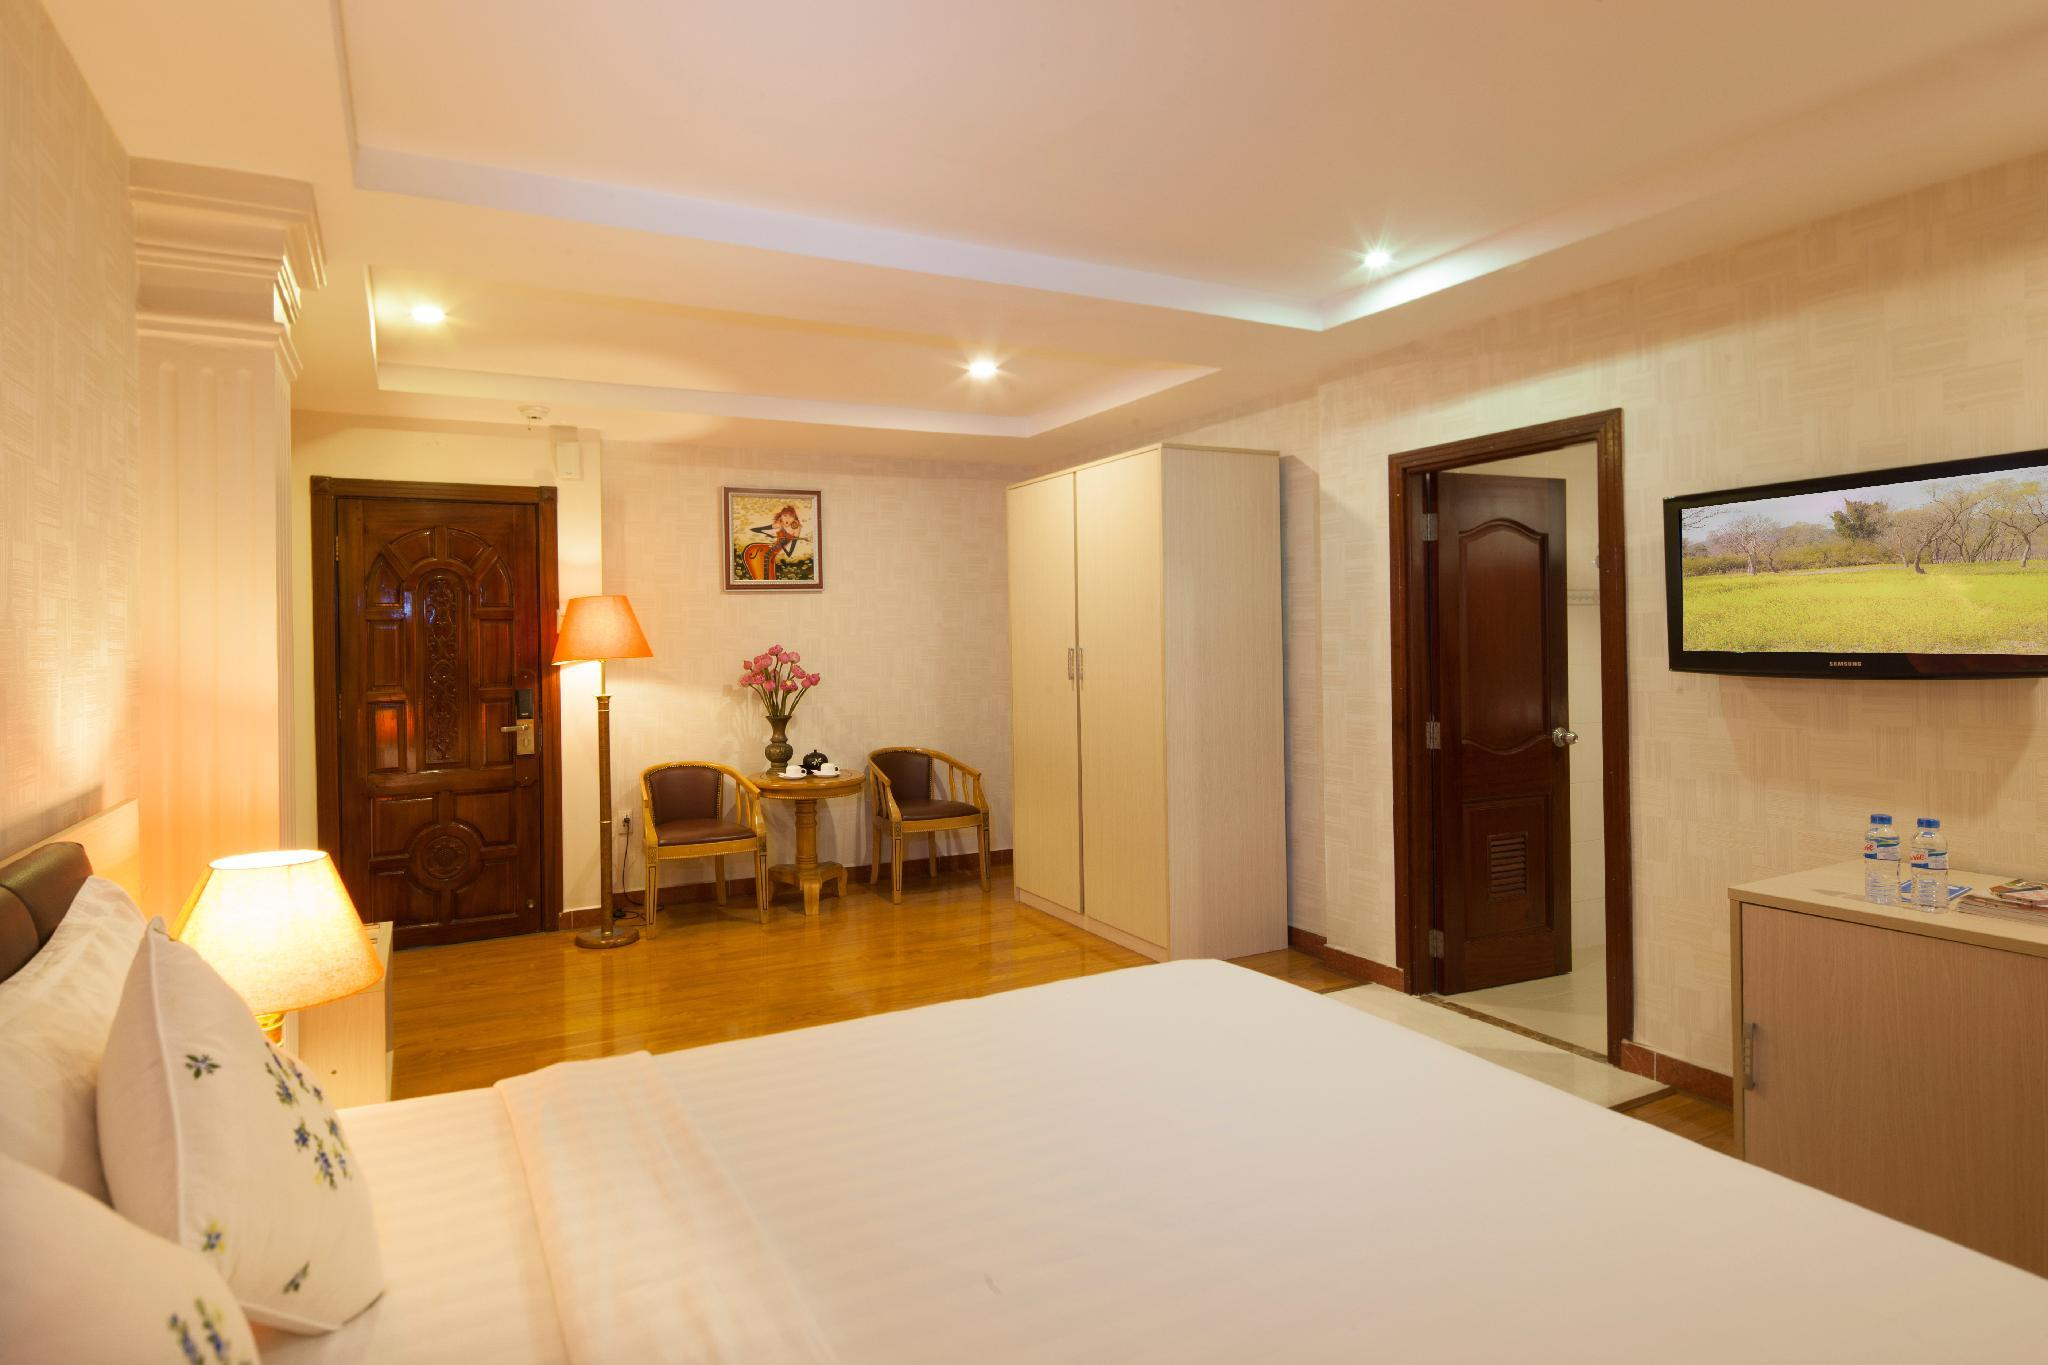 Premium Deluxe Double Room with Window - Rooftop Pool Access Included